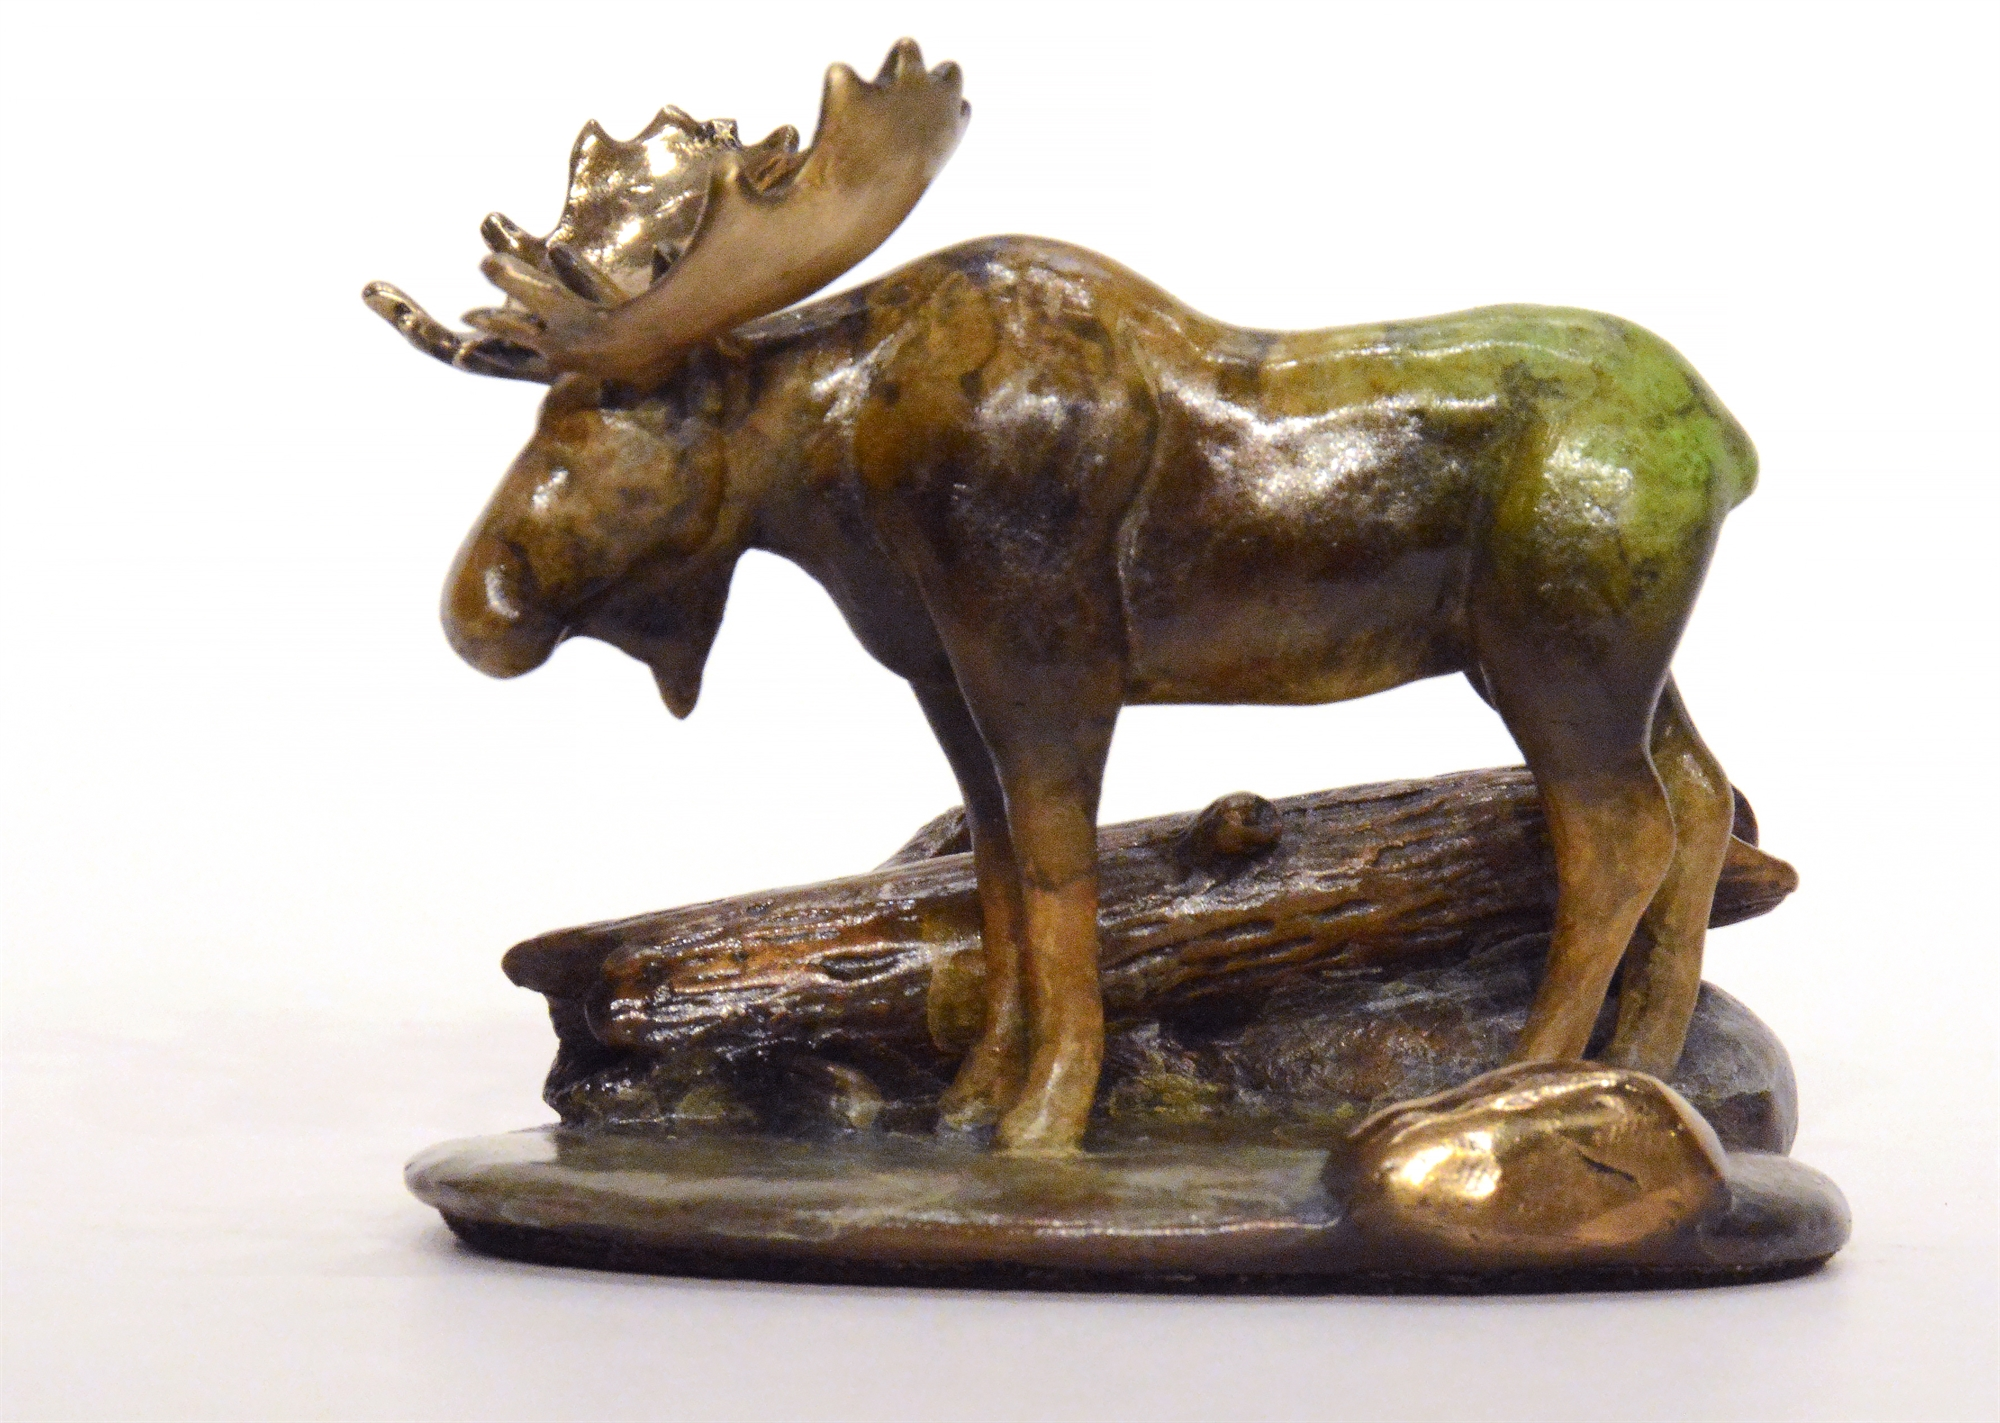 Lumber (Moose) by Eric Wilcox